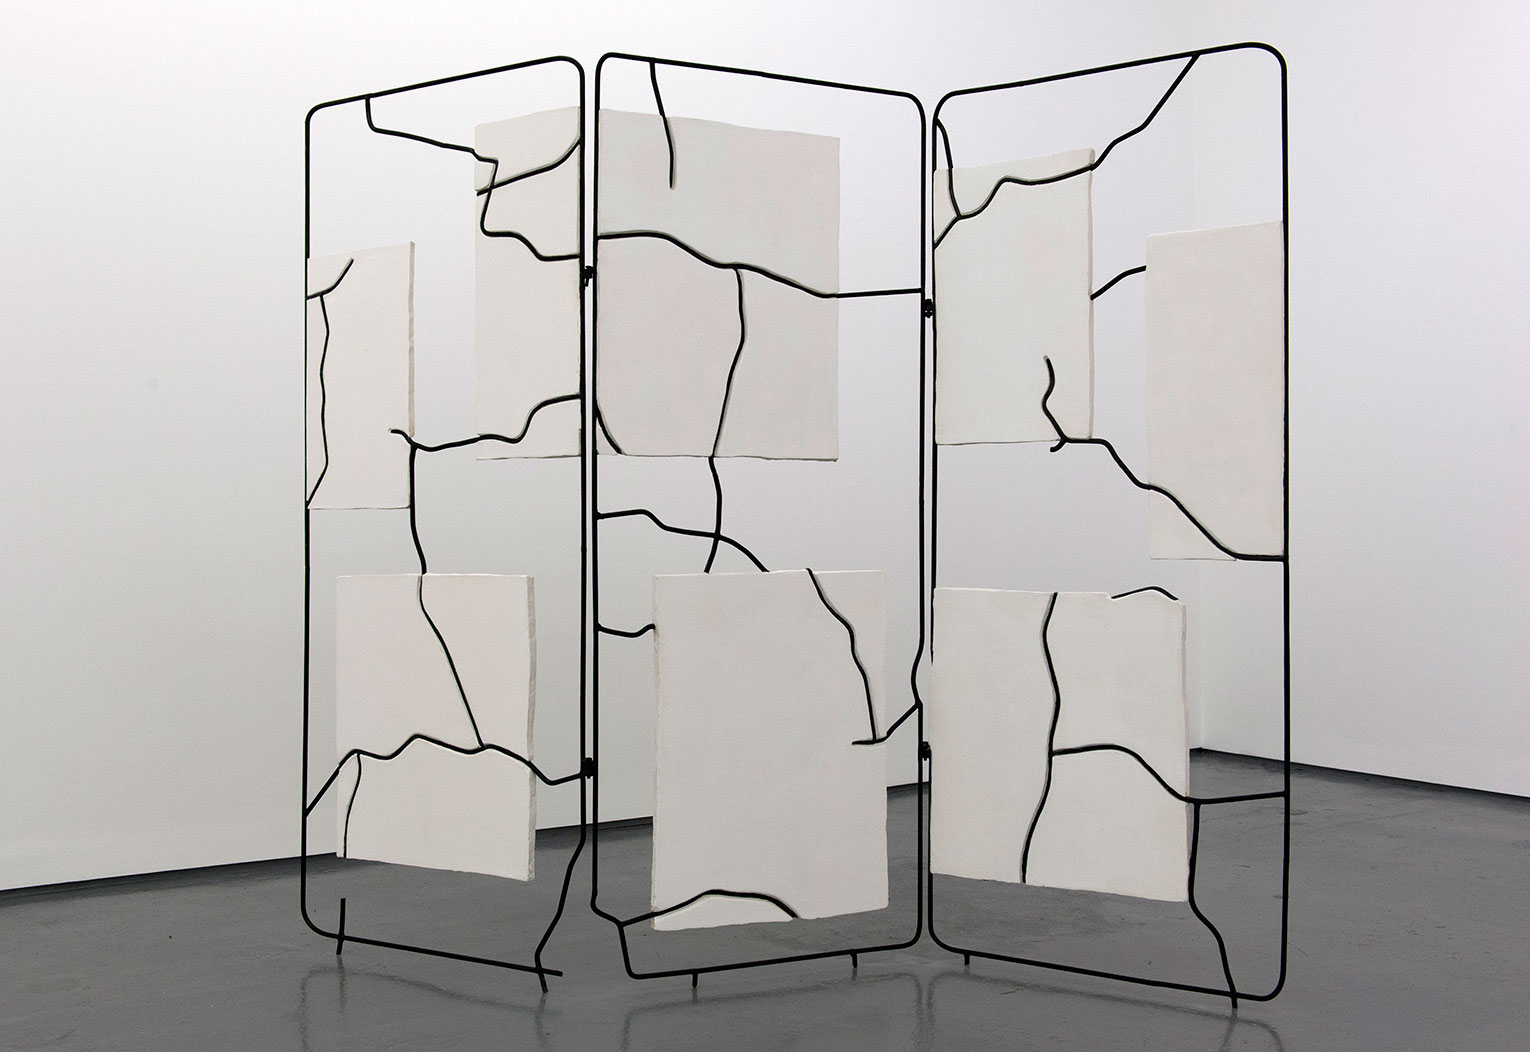 <b>Title:&nbsp;</b>Length of Leaning<br /><b>Year:&nbsp;</b>2014<br /><b>Medium:&nbsp;</b>Plaster, steel, and paint<br /><b>Size:&nbsp;</b>165 x 210 x 20 cm